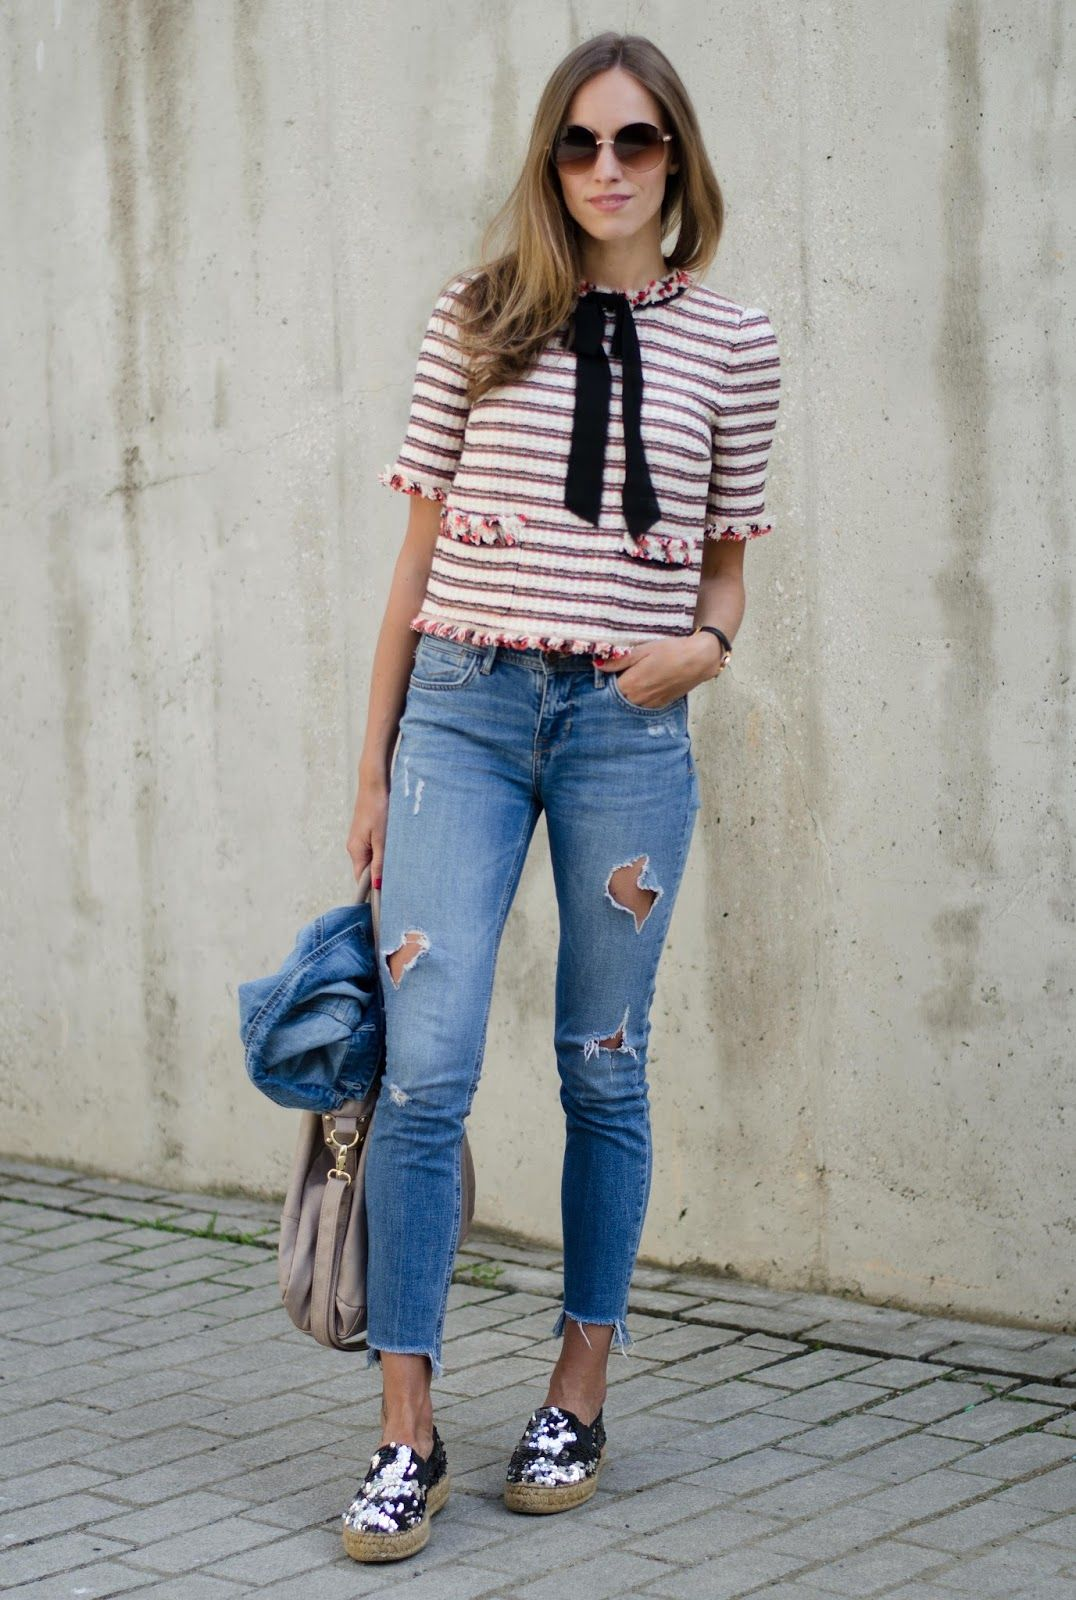 87d7cbecd6a2 kristjaana mere striped bow top frayed jeans sequin espadrilles outfit